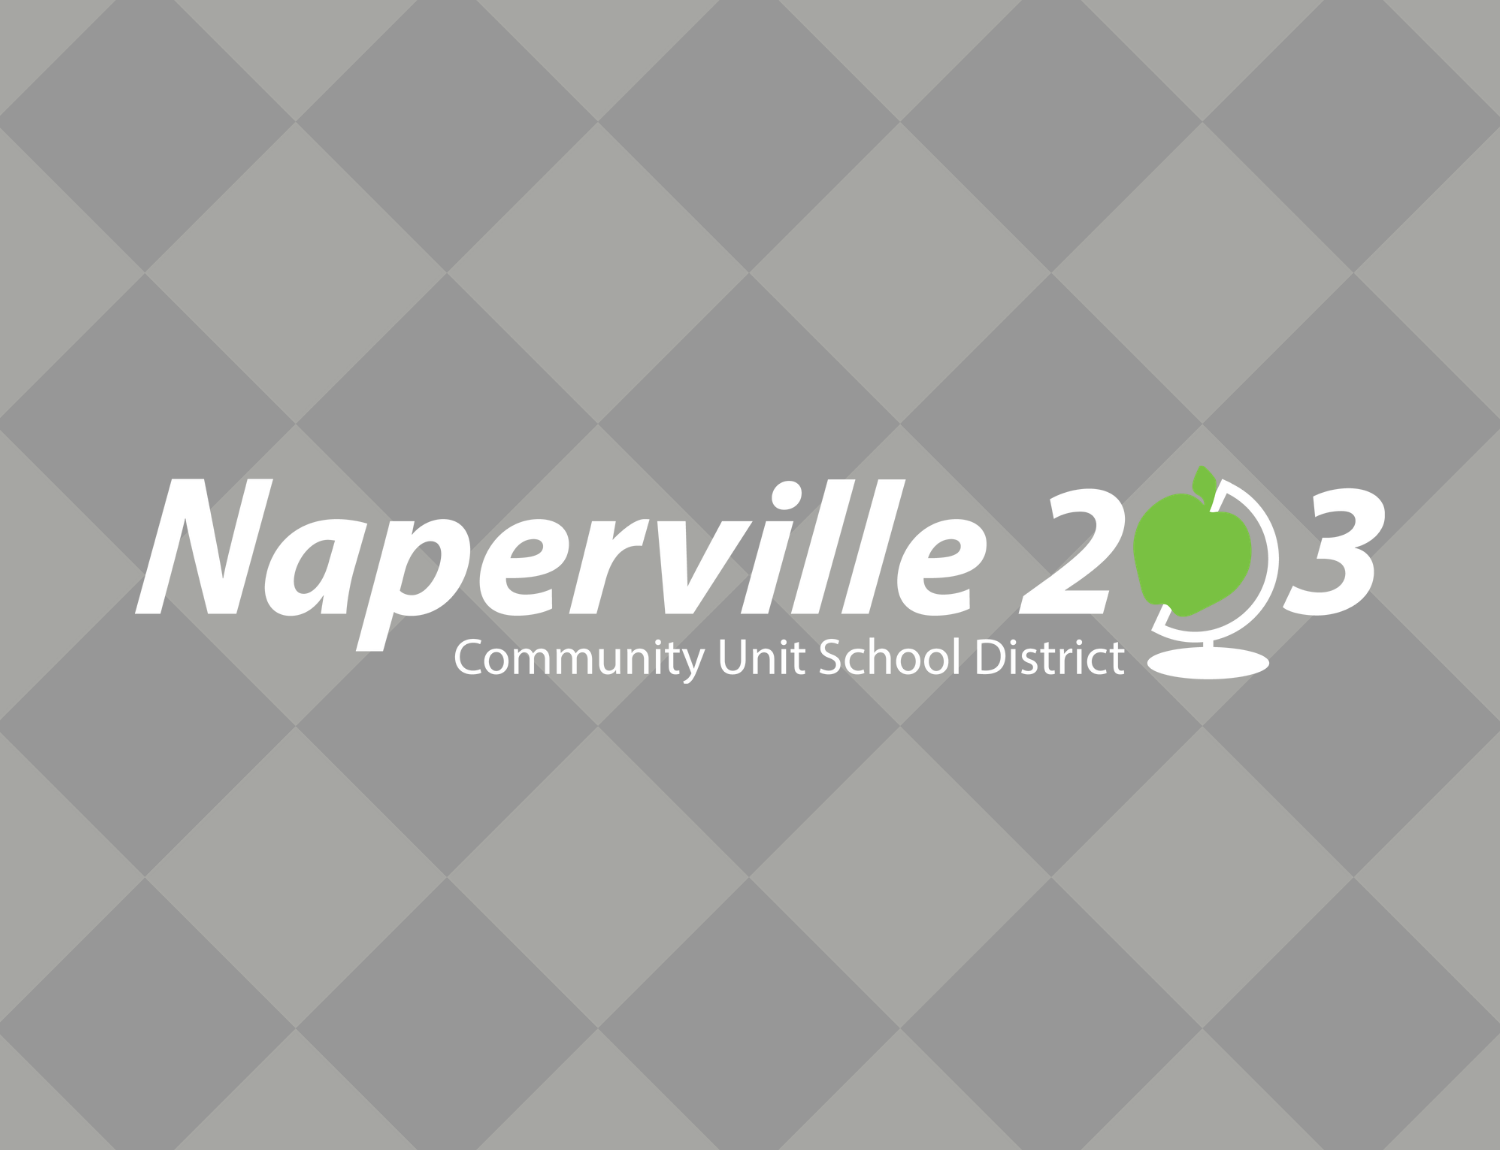 Naperville 203 Offers Resources for Families After Current Events in Washington, D.C.